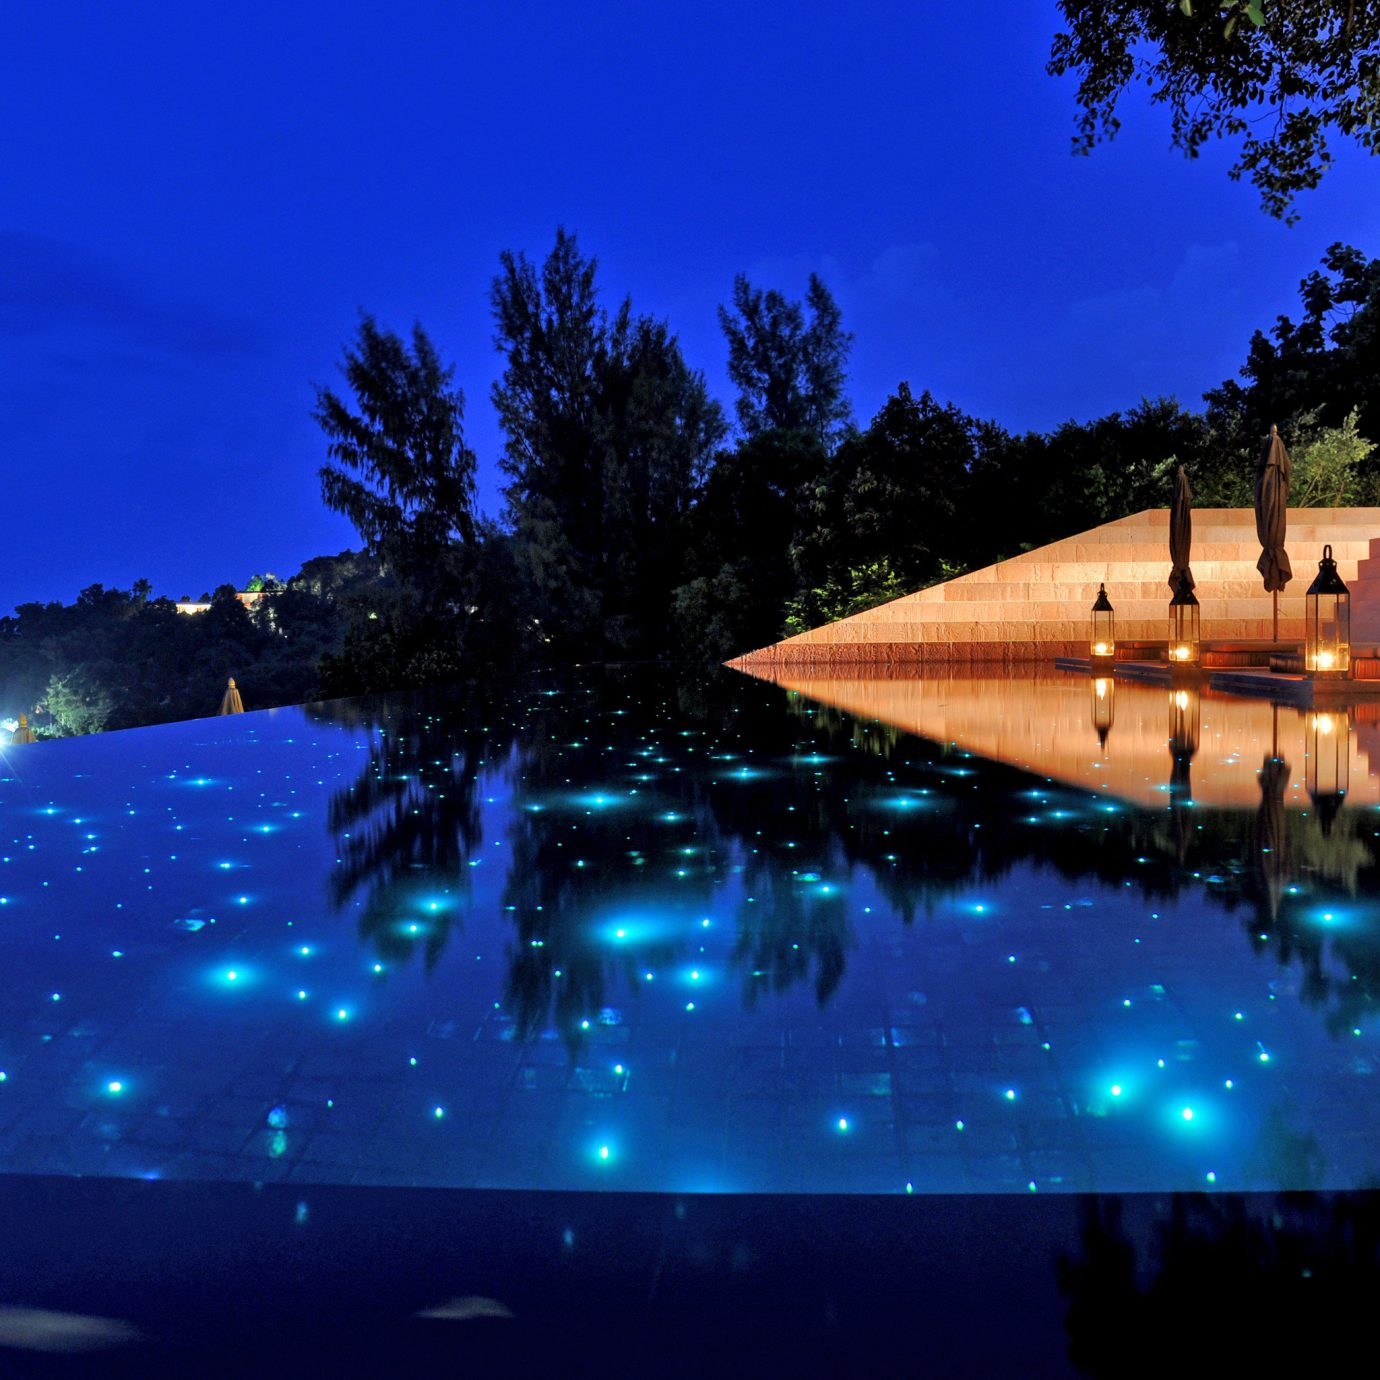 Elegant Luxury Modern Pool Romantic tree sky light night atmosphere of earth evening sunlight screenshot dusk